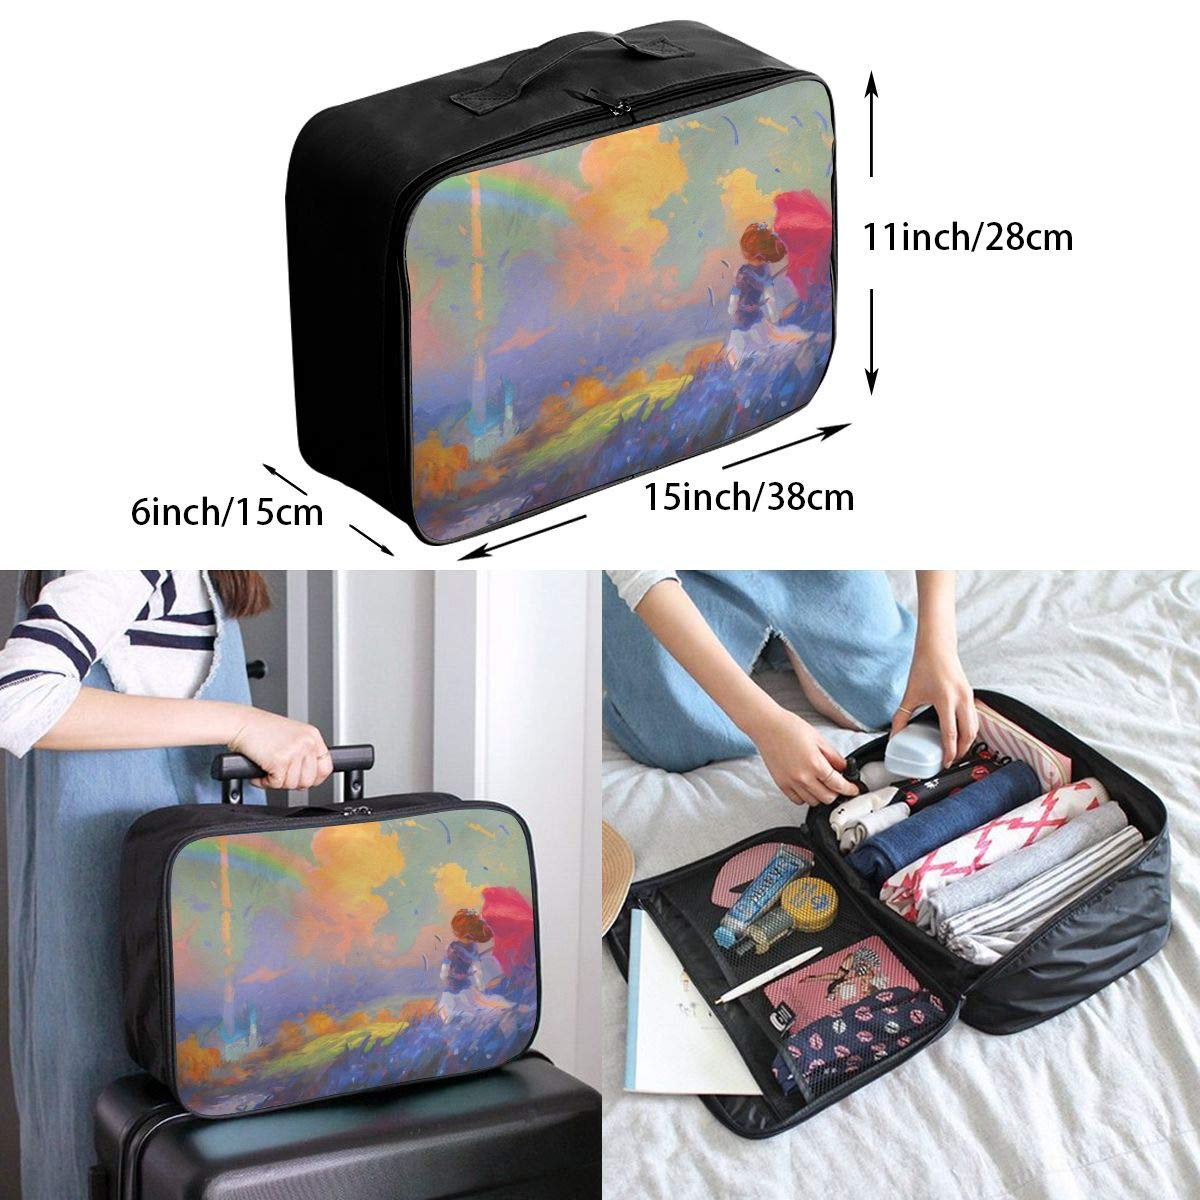 Lovely Girl And Beautiful Rainbow Travel Lightweight Waterproof Folding Storage Portable Luggage Duffle Tote Bag Large Capacity In Trolley Handle Bags 6x11x15 Inch